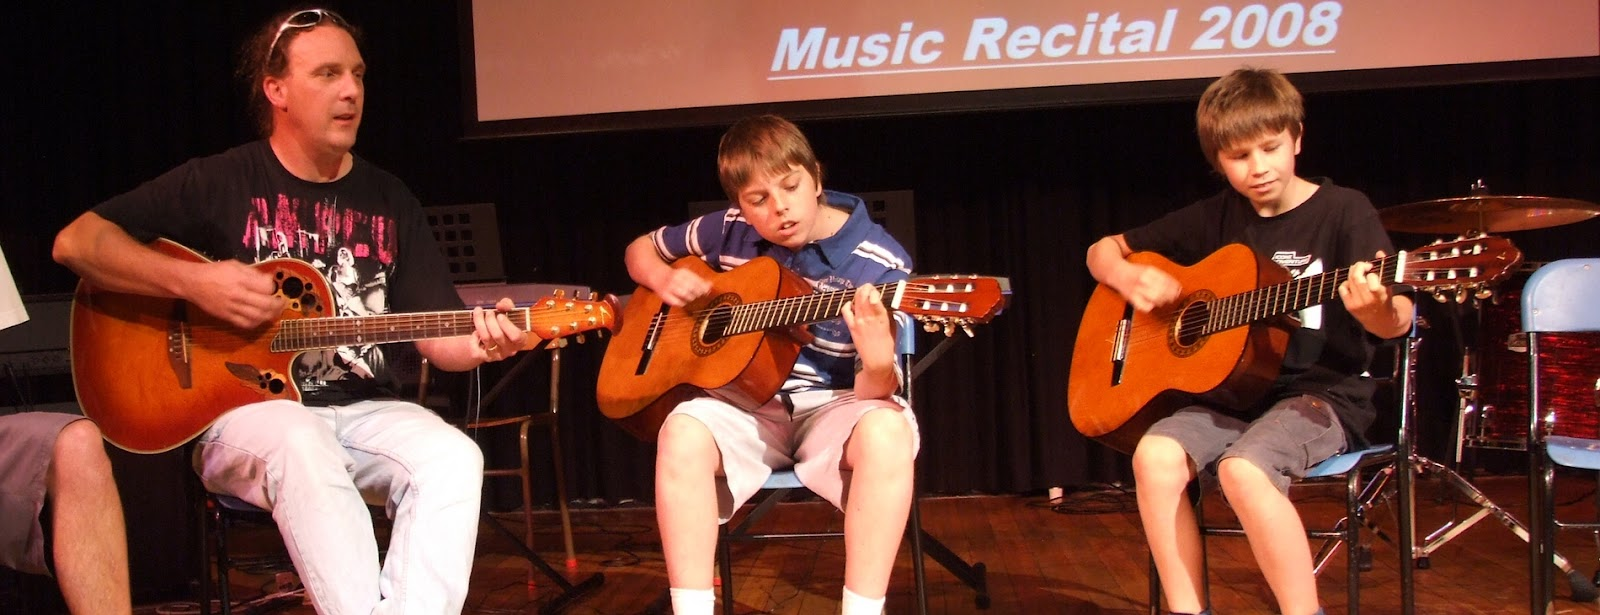 justin_jamming_with_students_2008.jpg